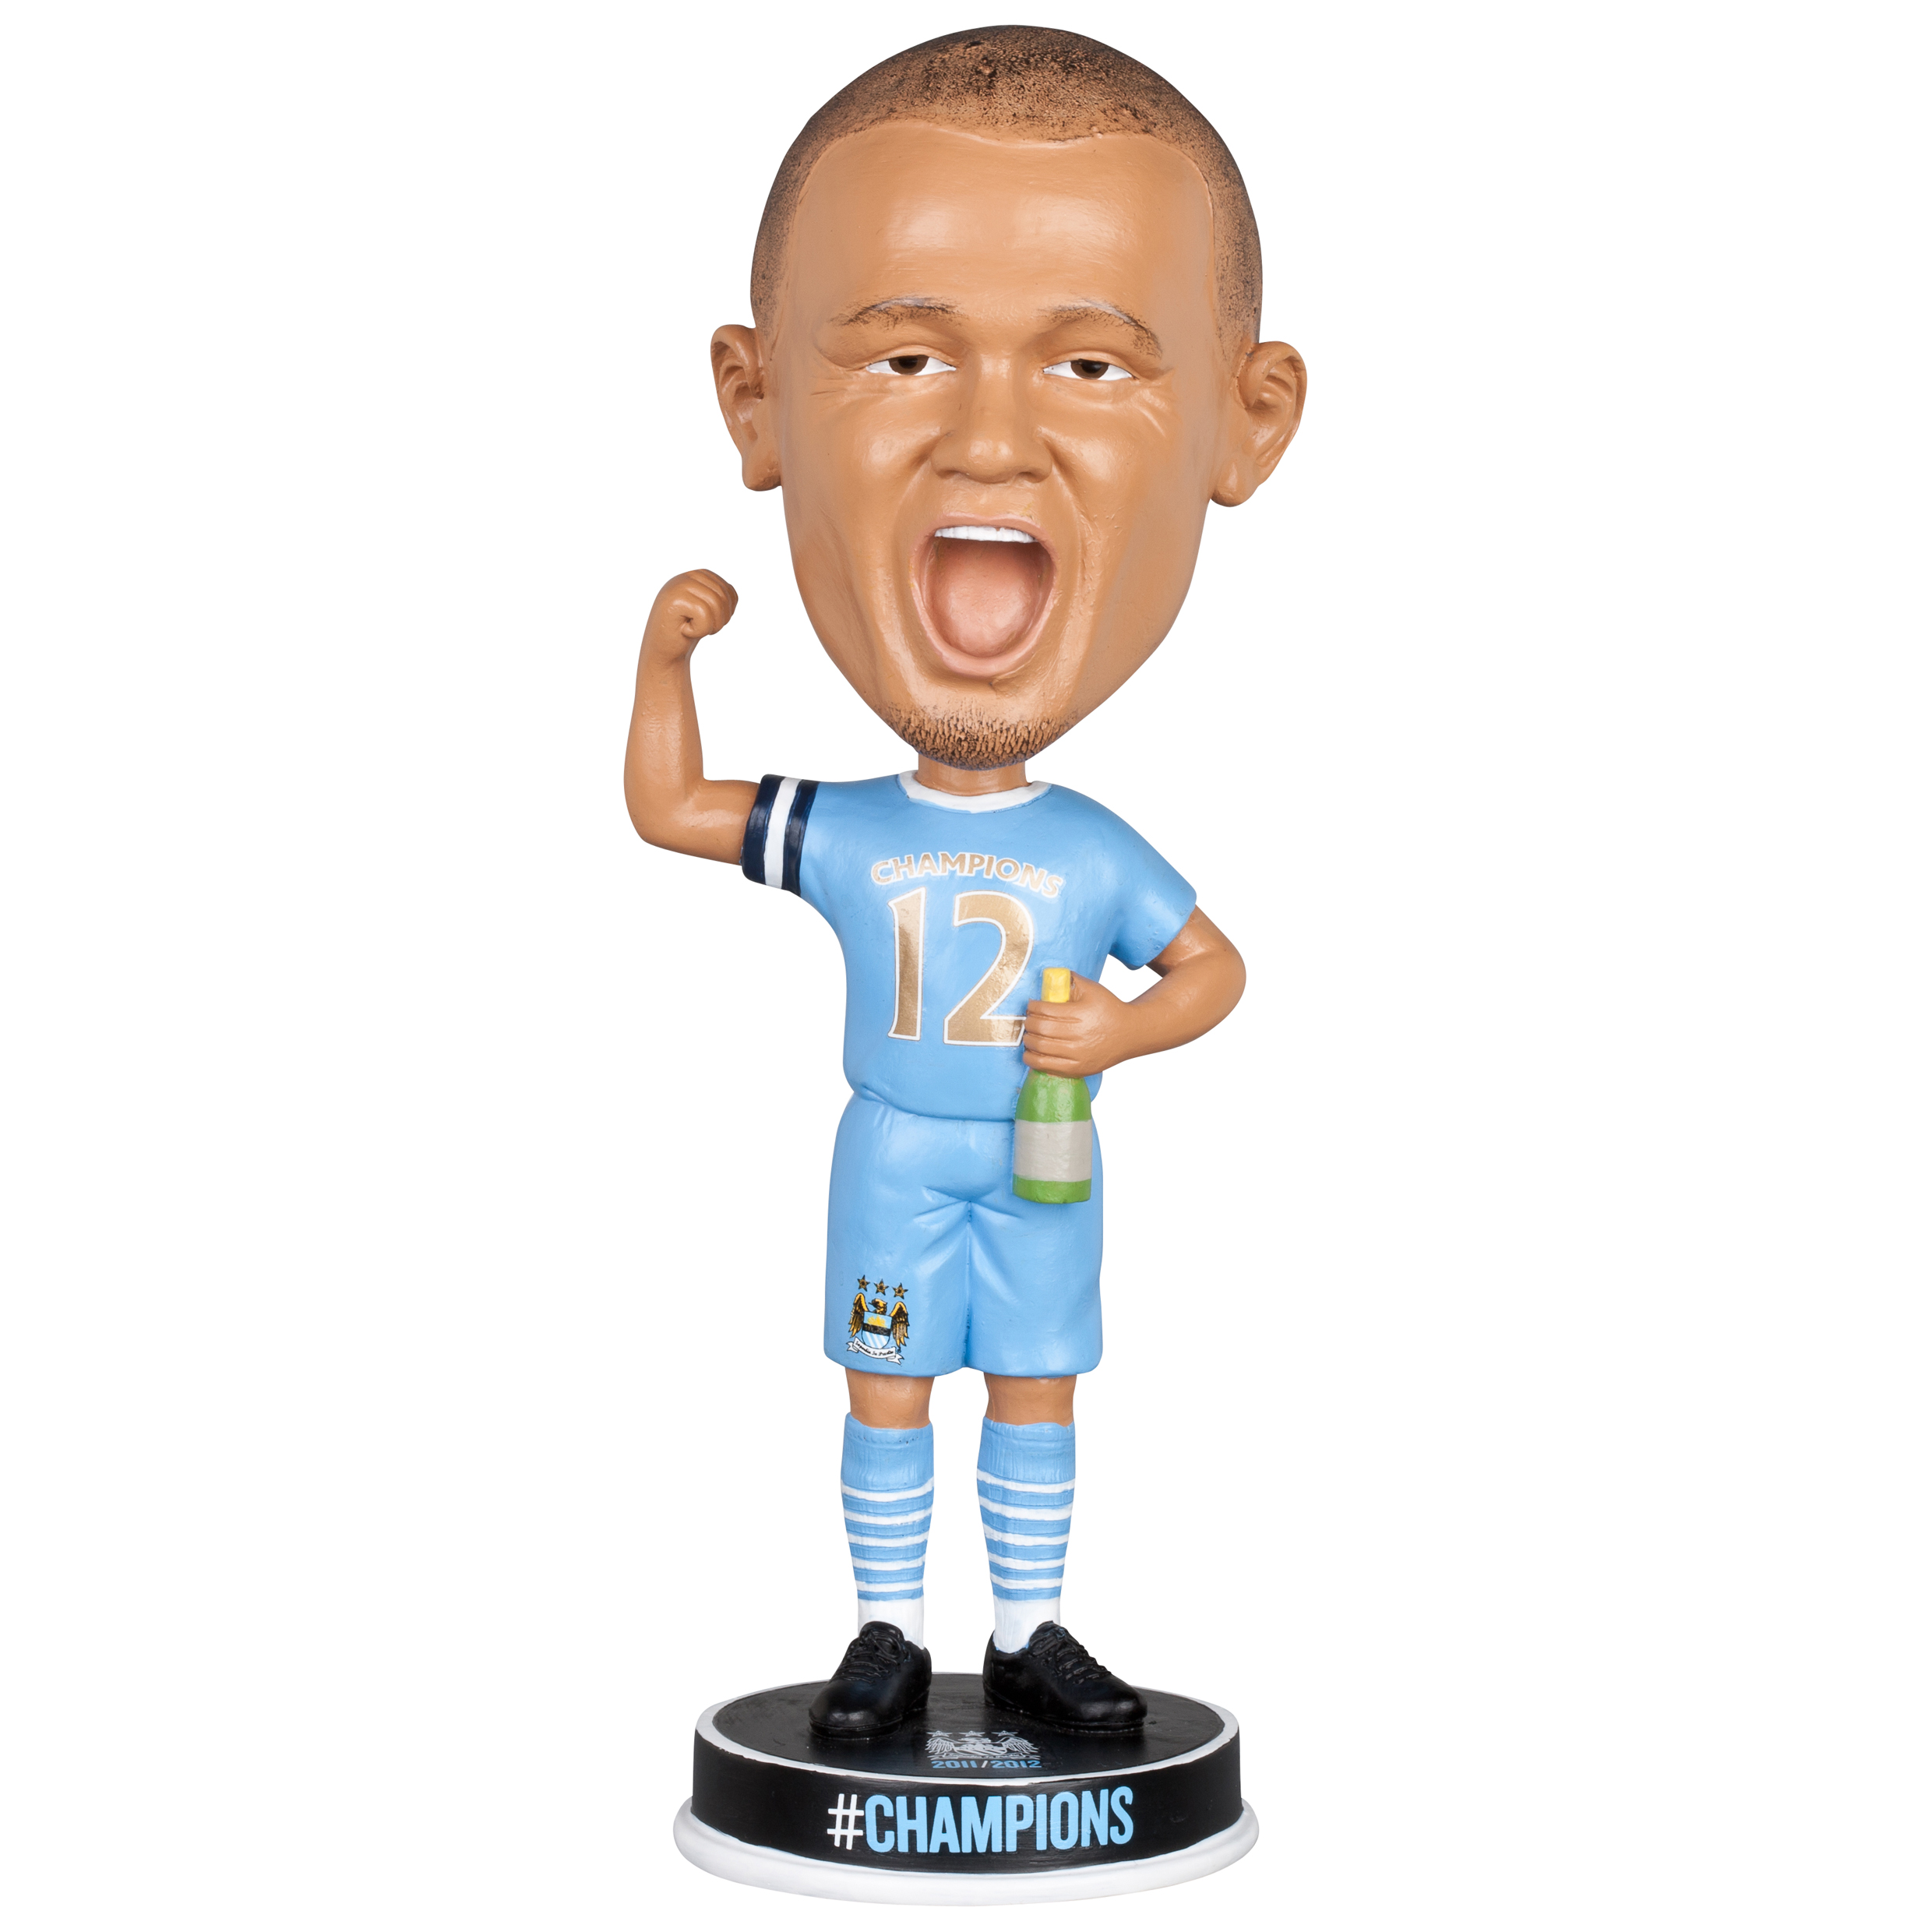 Manchester City #Champions 11/12 Kompany Bobble Head